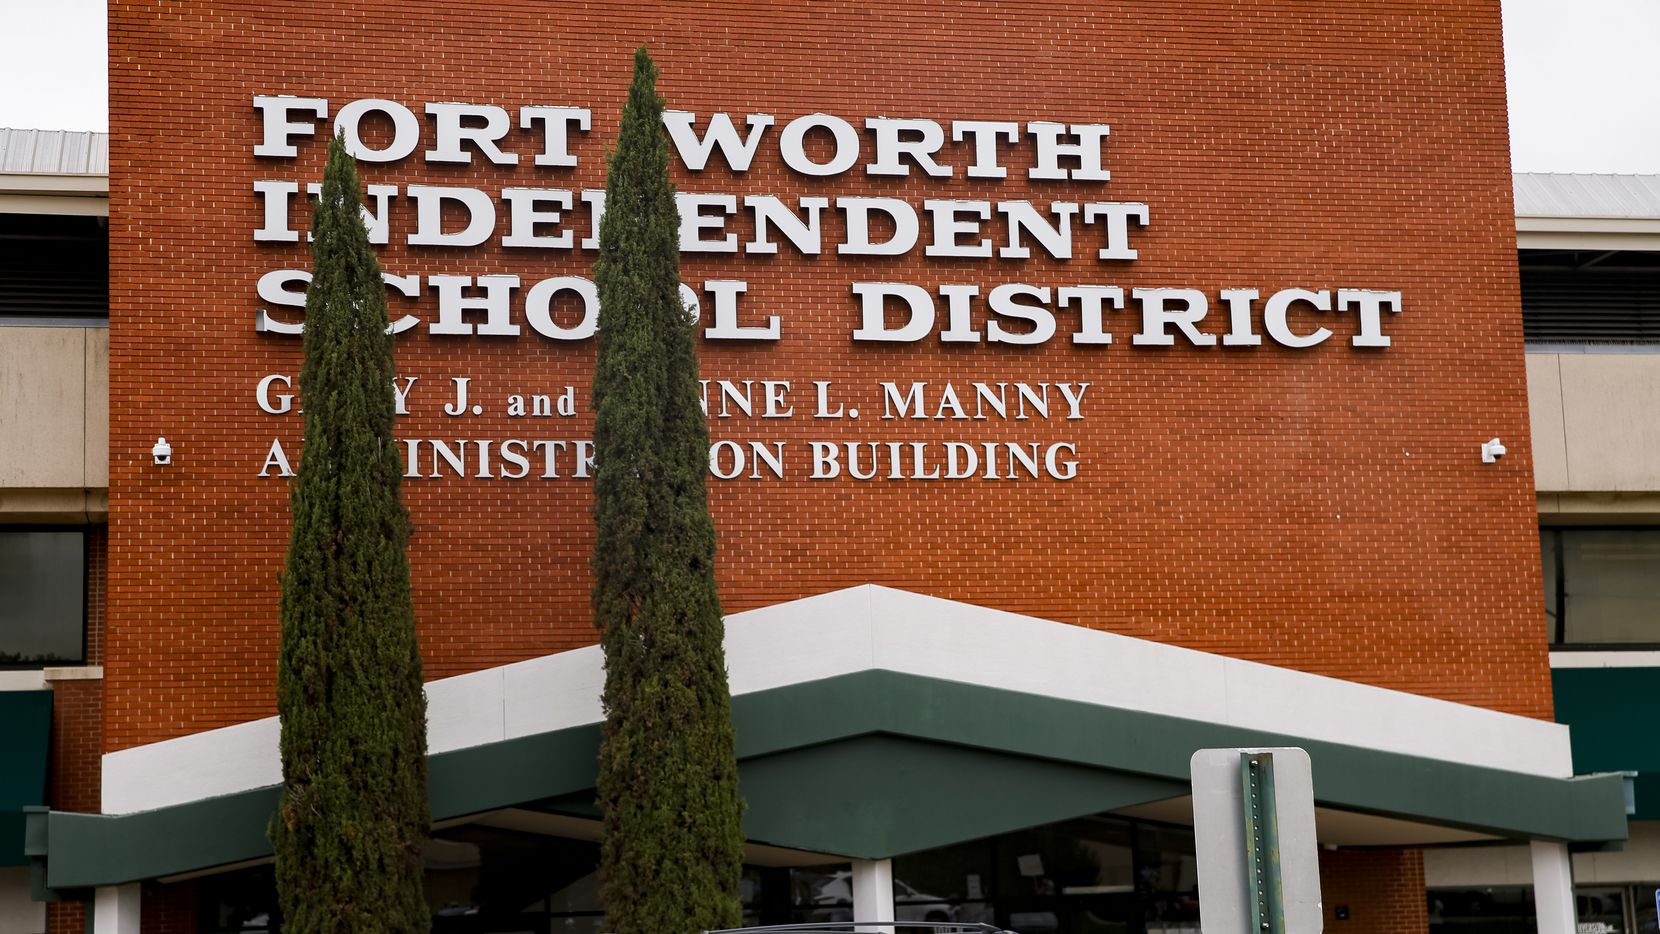 The Forth Worth school district will hold a specially called board meeting on Aug. 26 to discuss next moves related to the governor's executive order banning mask mandates.